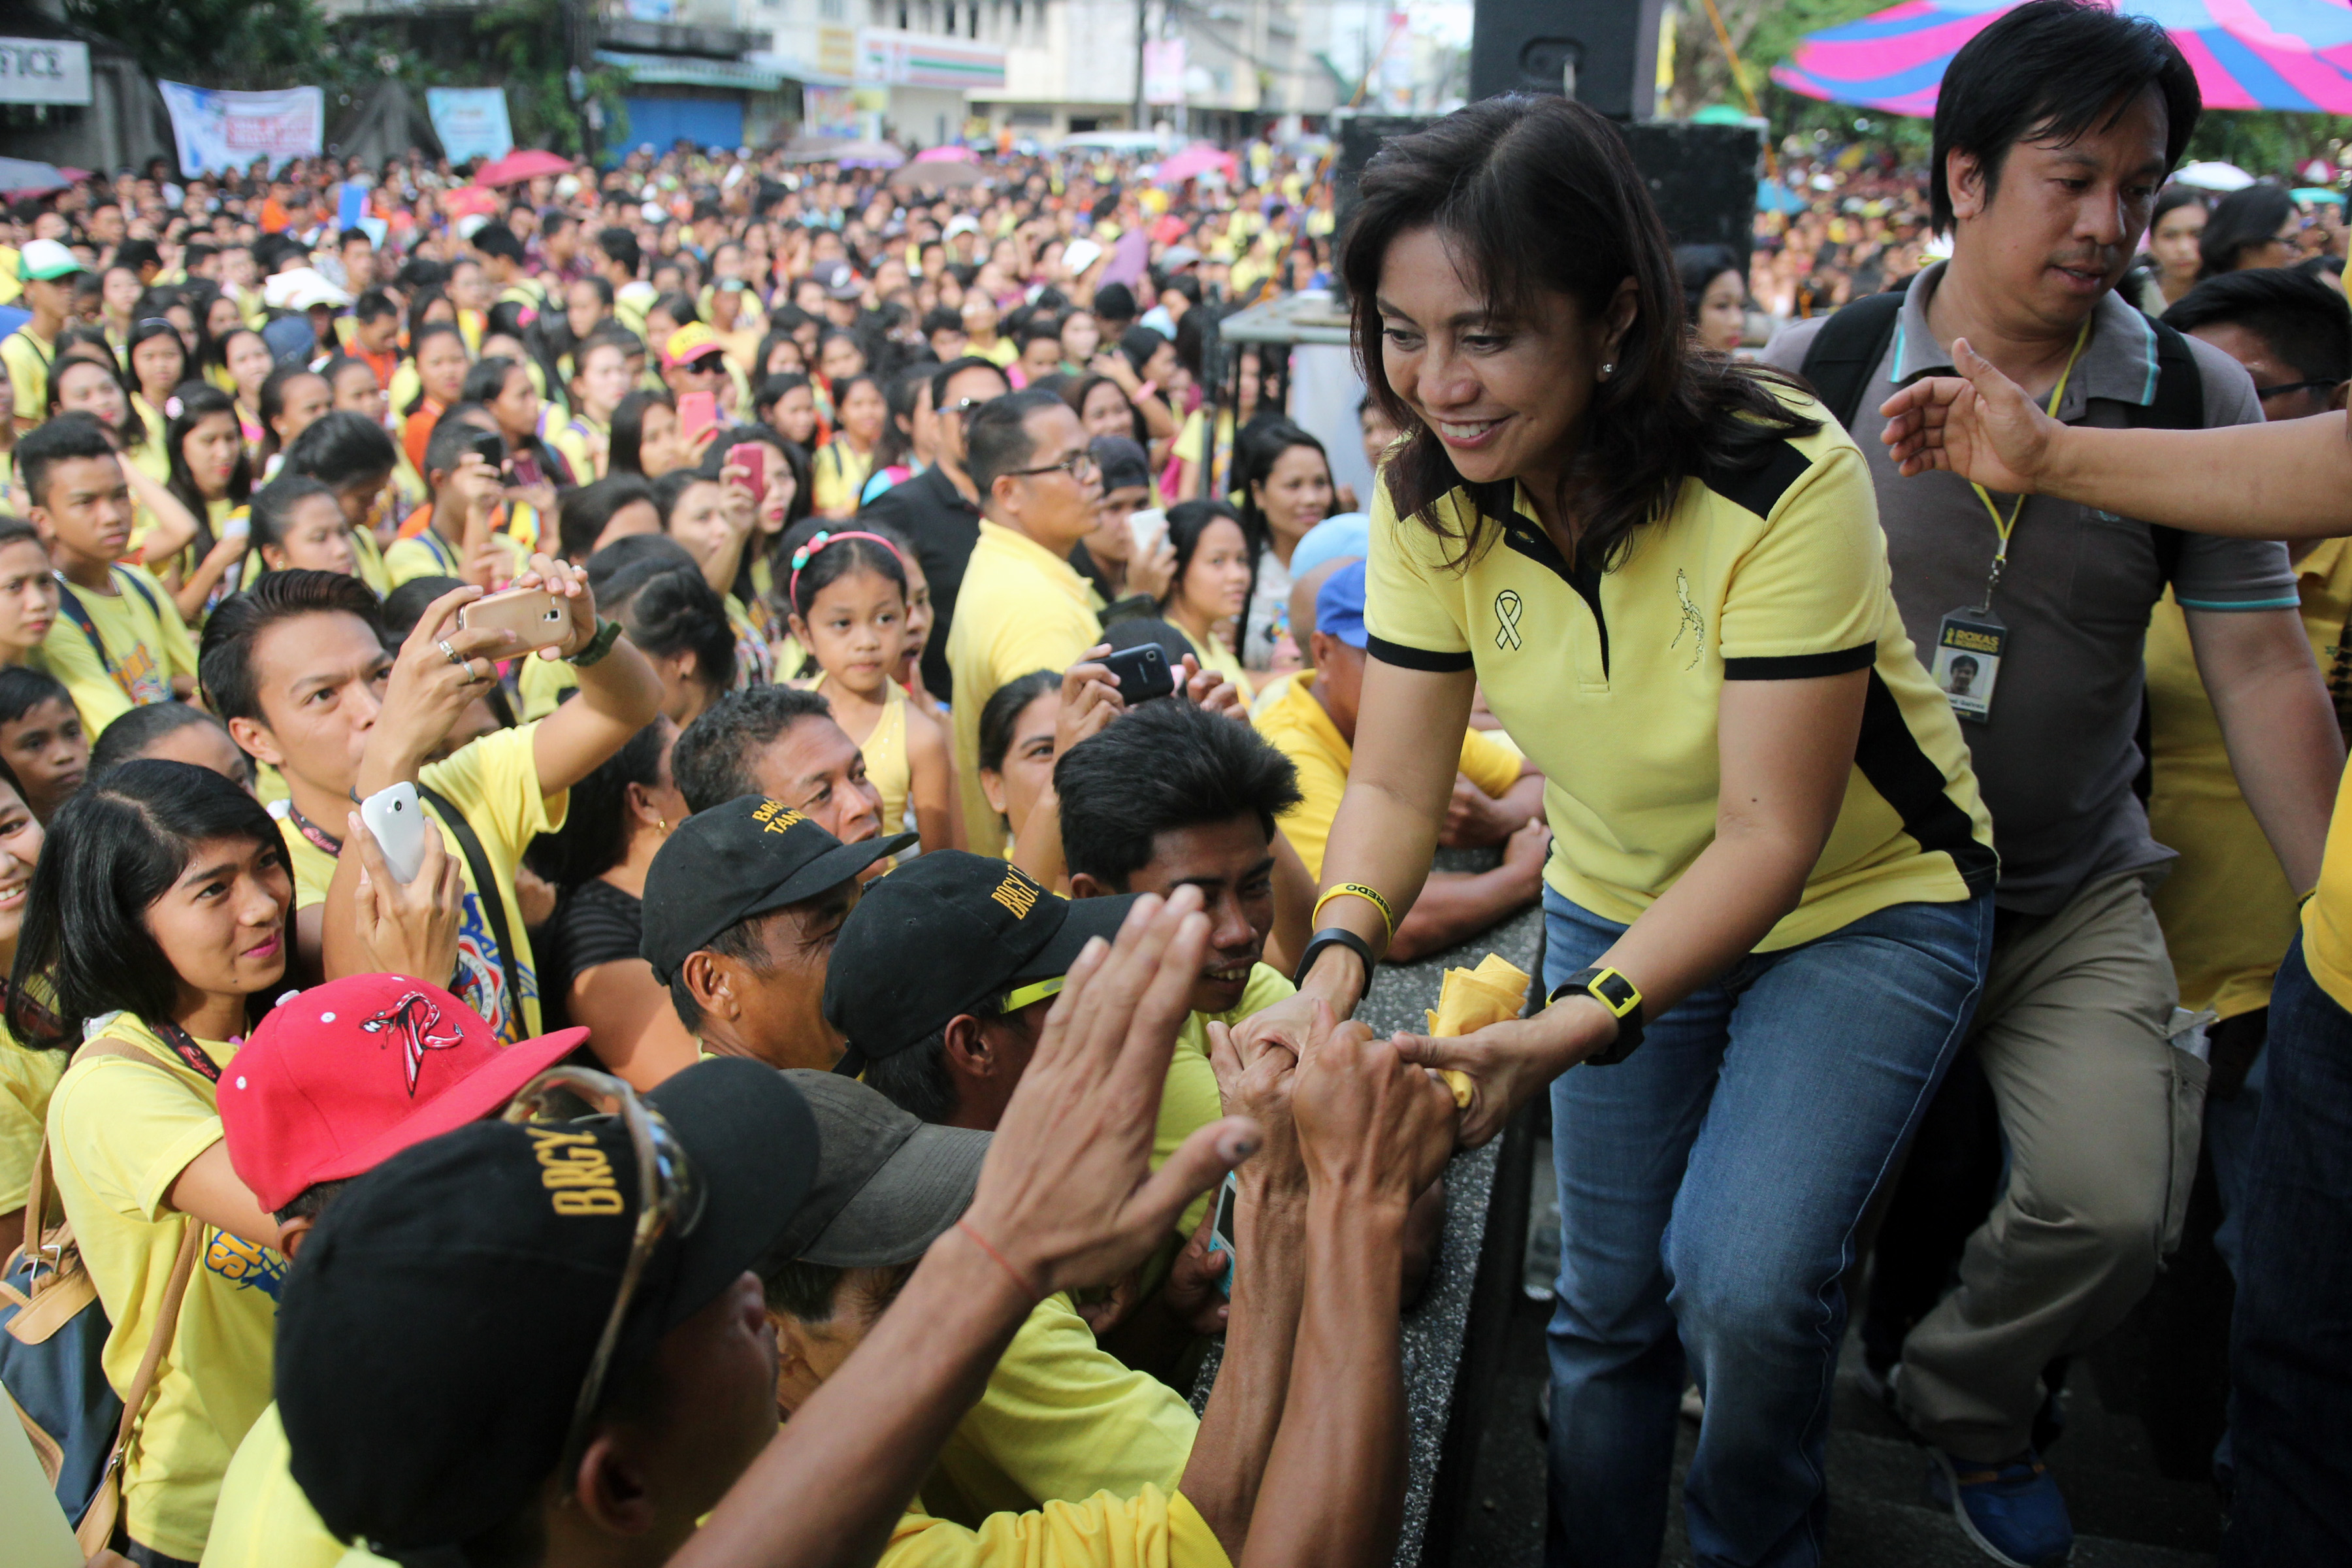 WOOING VOTERS. Leni Robredo on the campaign trail. File photo by Franz Lopez/Rappler